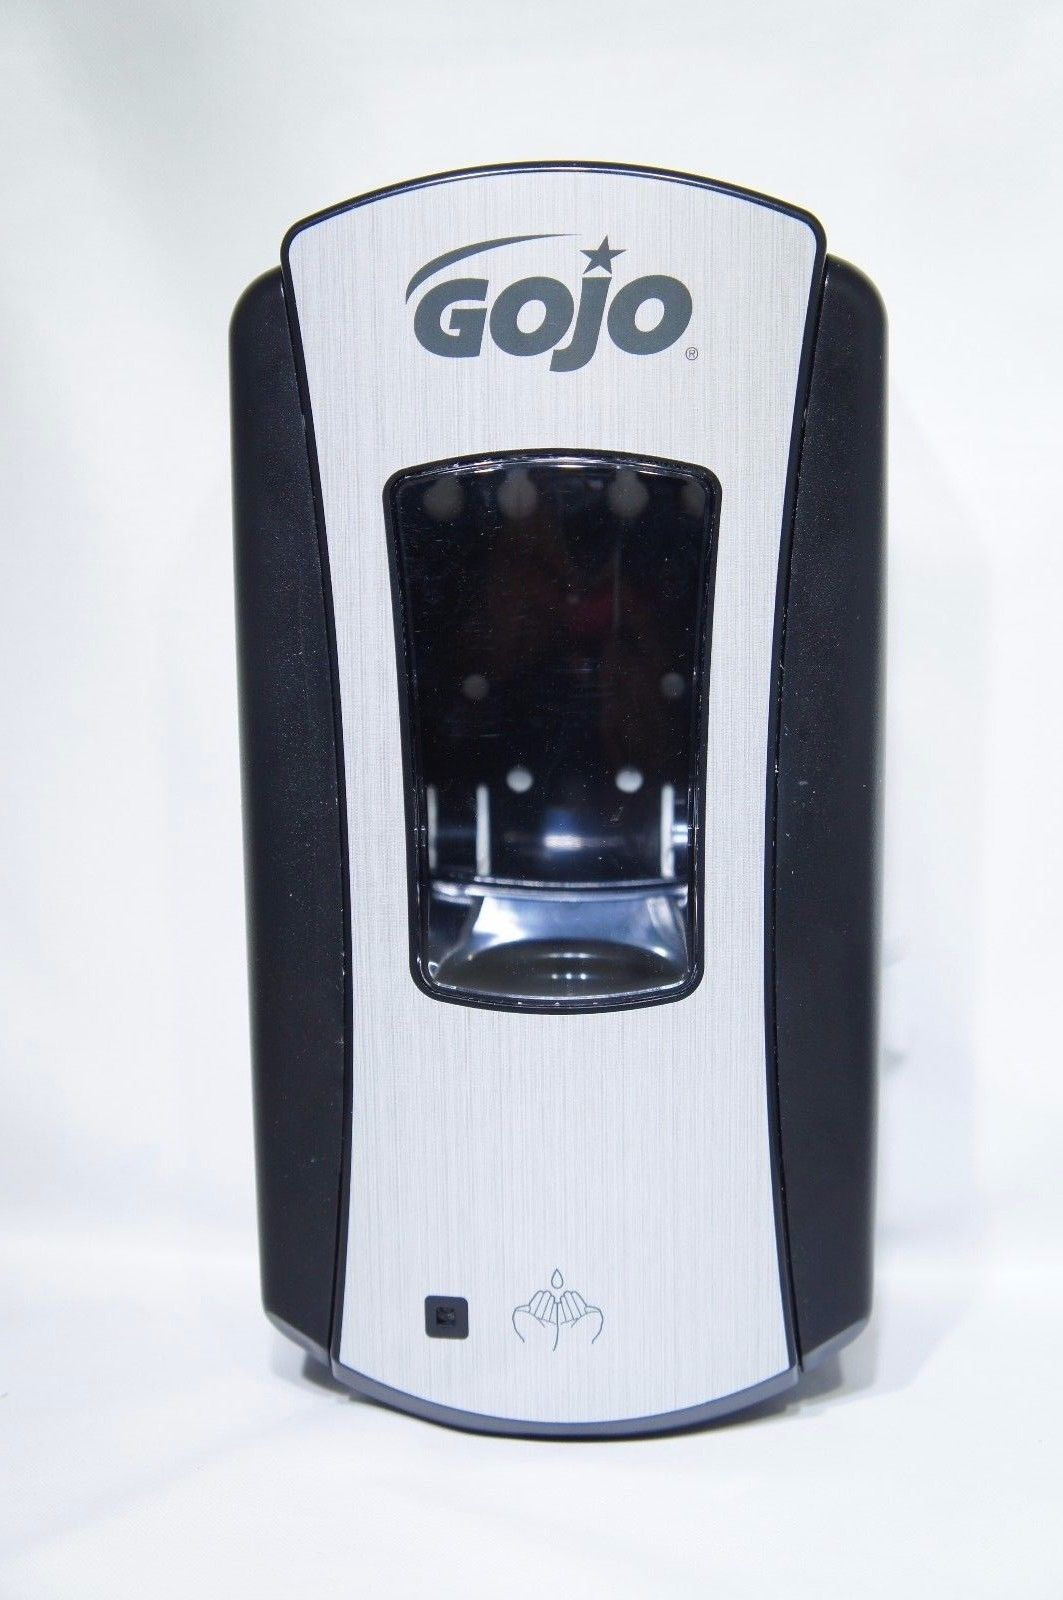 GOJO 1912-D1 LTX-12 Soap Dispenser Electronic (ONLY DISPENSER)